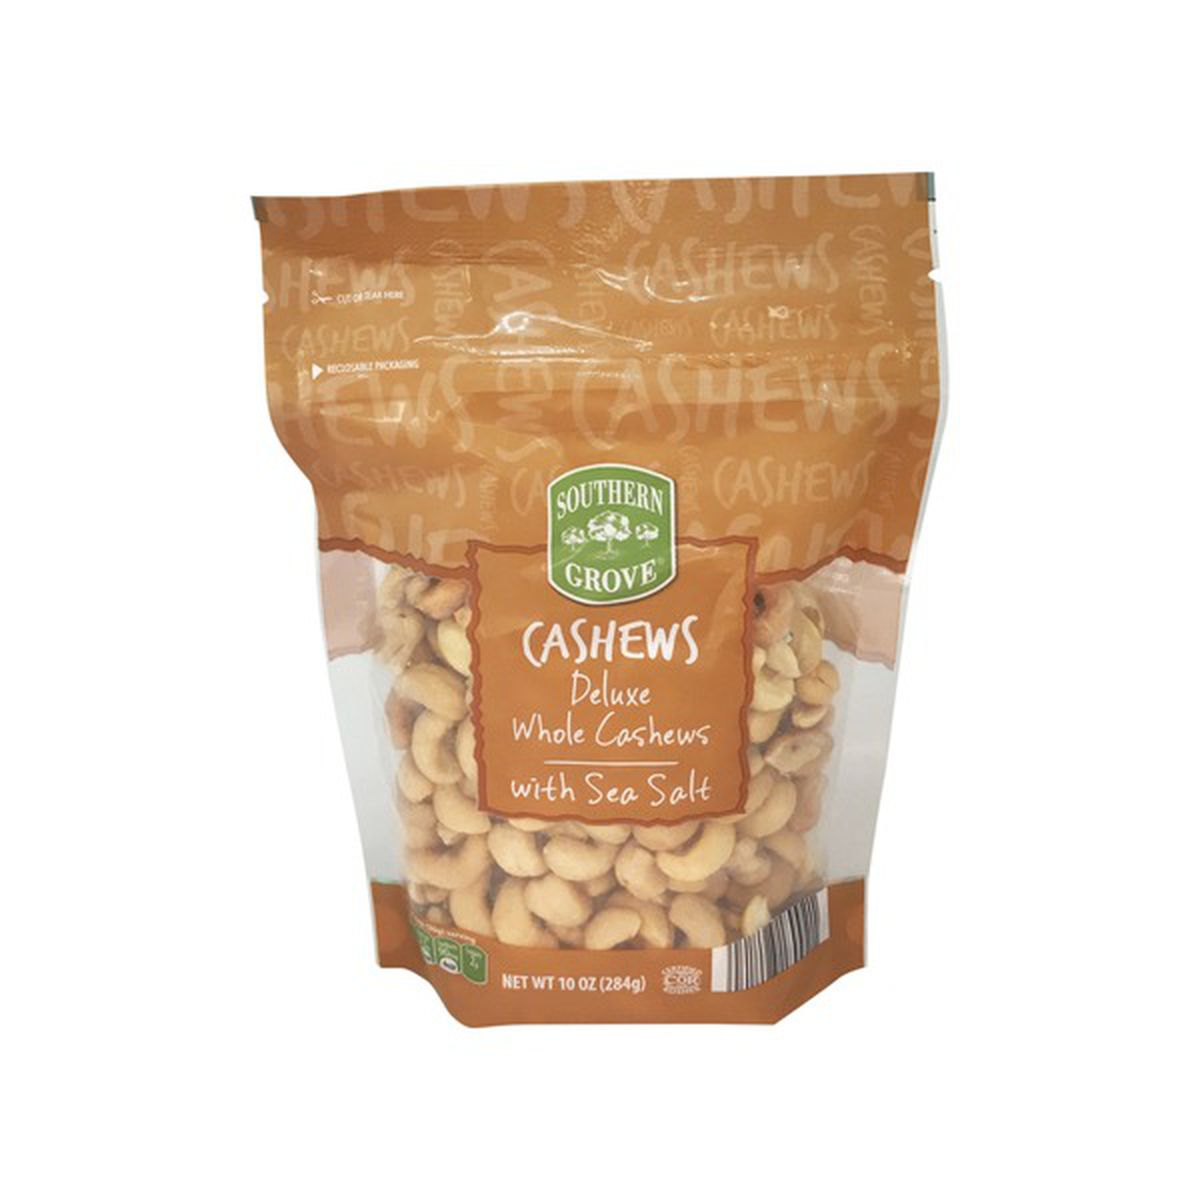 Deluxe Whole Cashews with Sea Salt